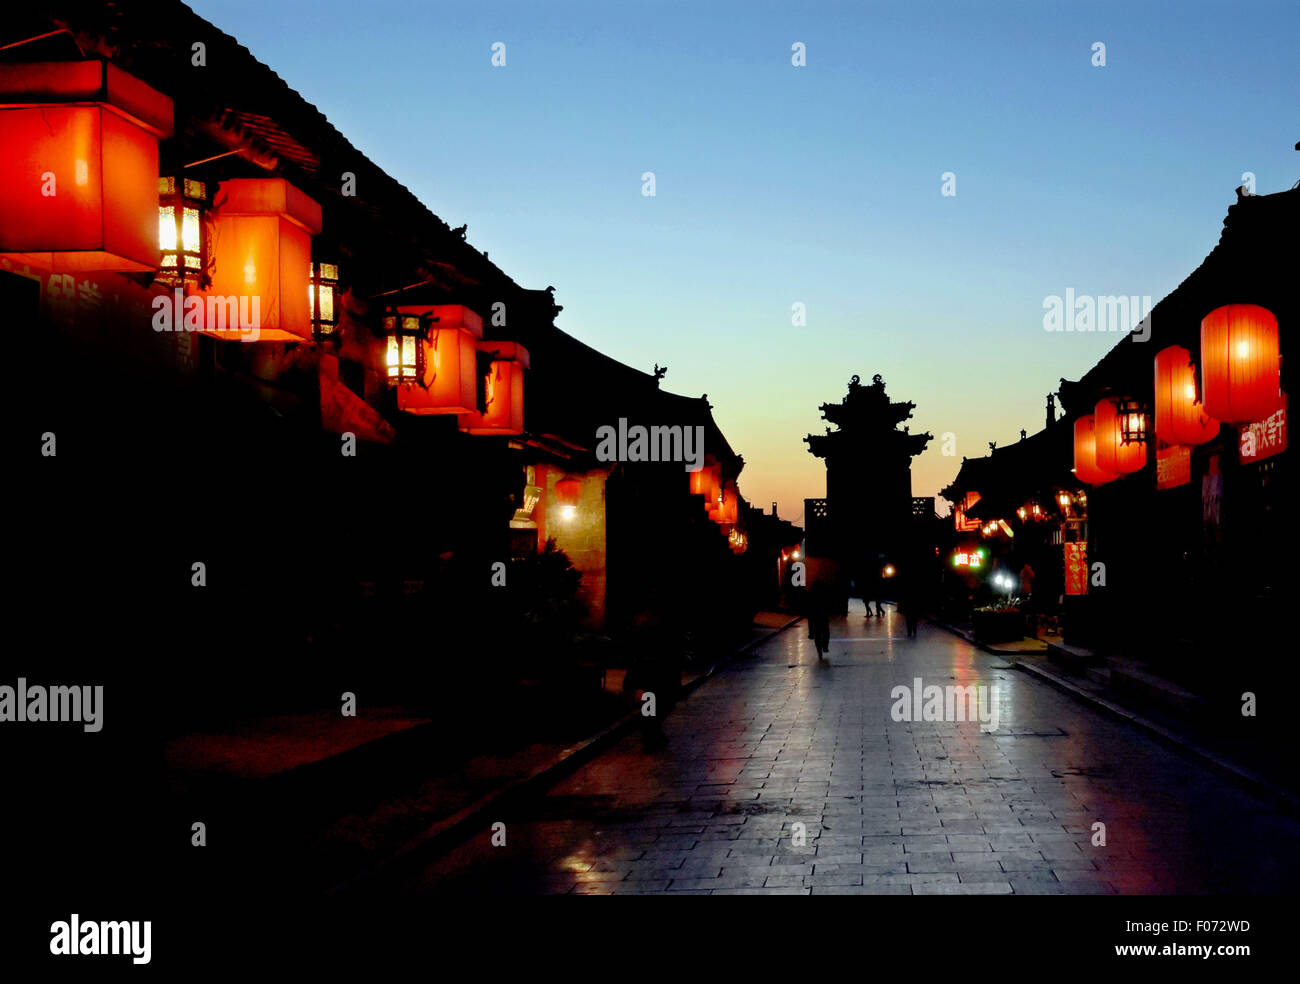 Beijing, China. 8th Dec, 2014. Photo taken on Dec. 8, 2014 shows the night view of Pingyao ancient city, north China's Stock Photo